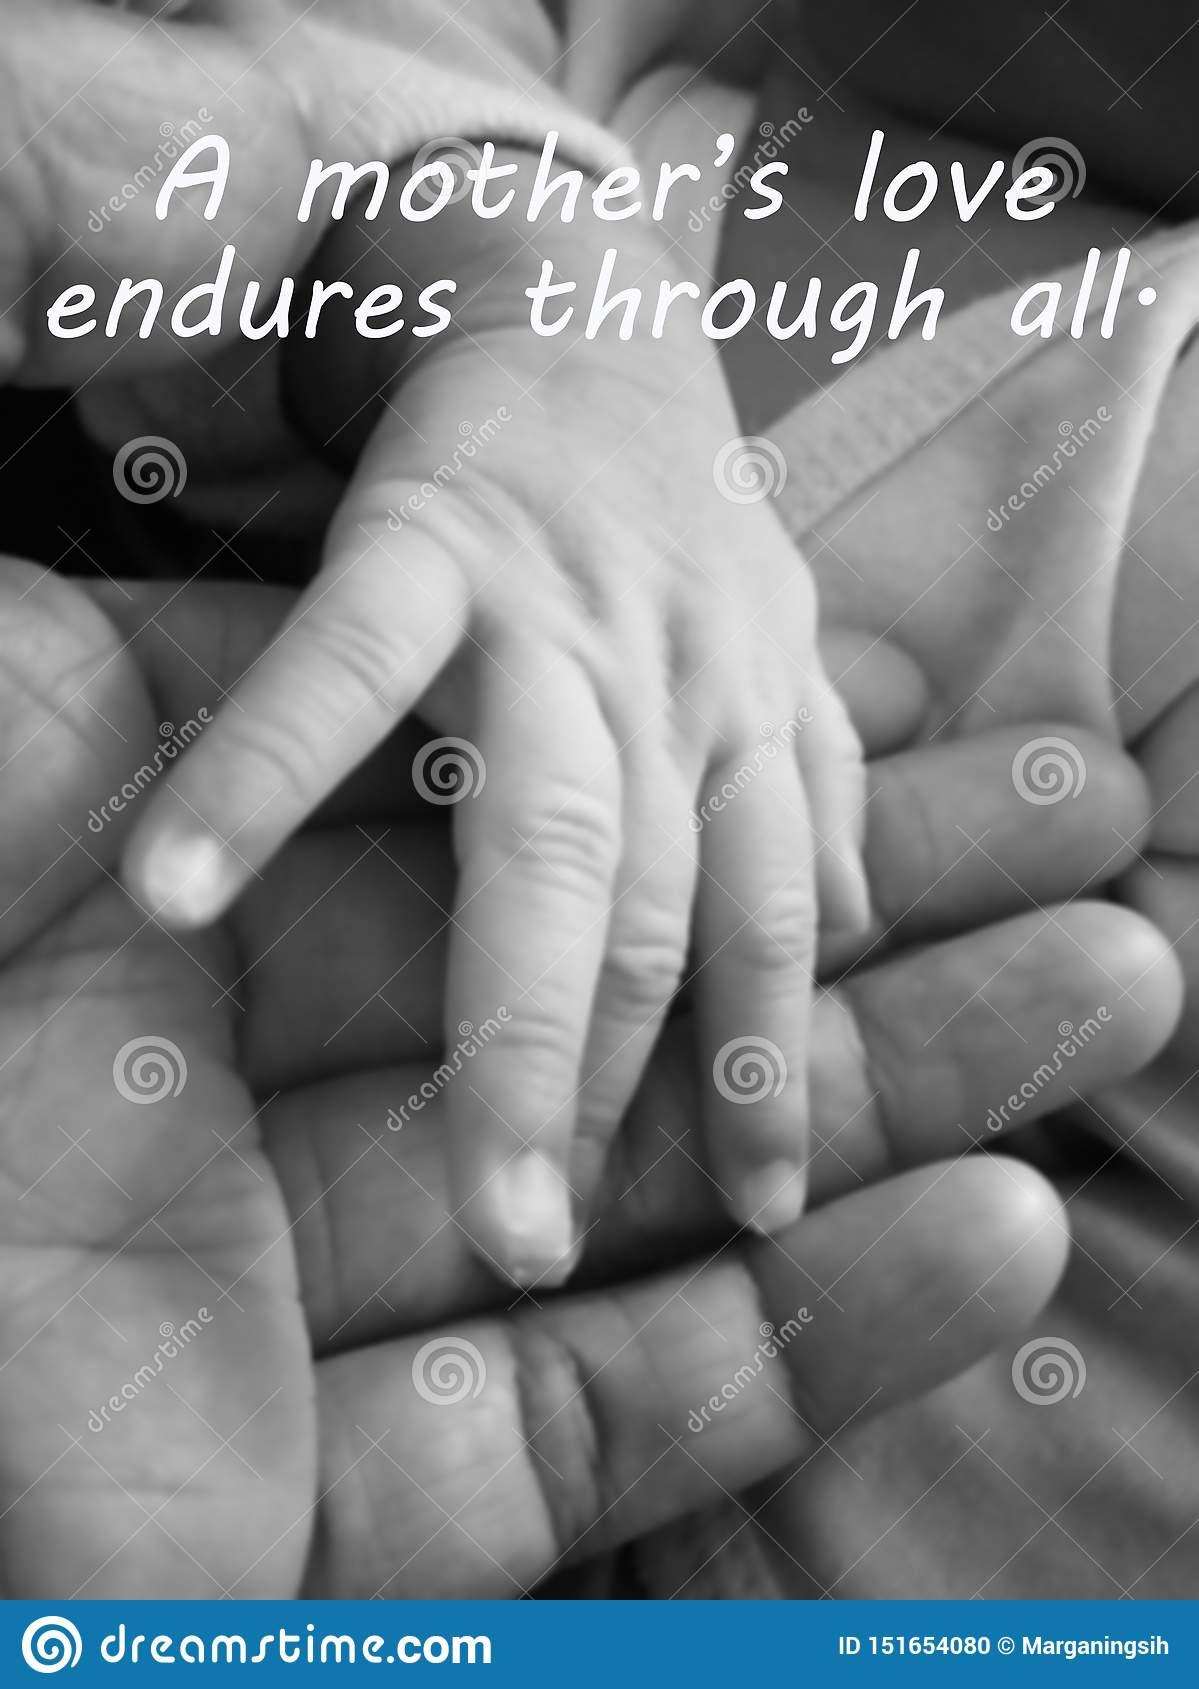 Inspirational mother quote- A mothers love endures through all. With blurry image of a fragile little baby new born hand and